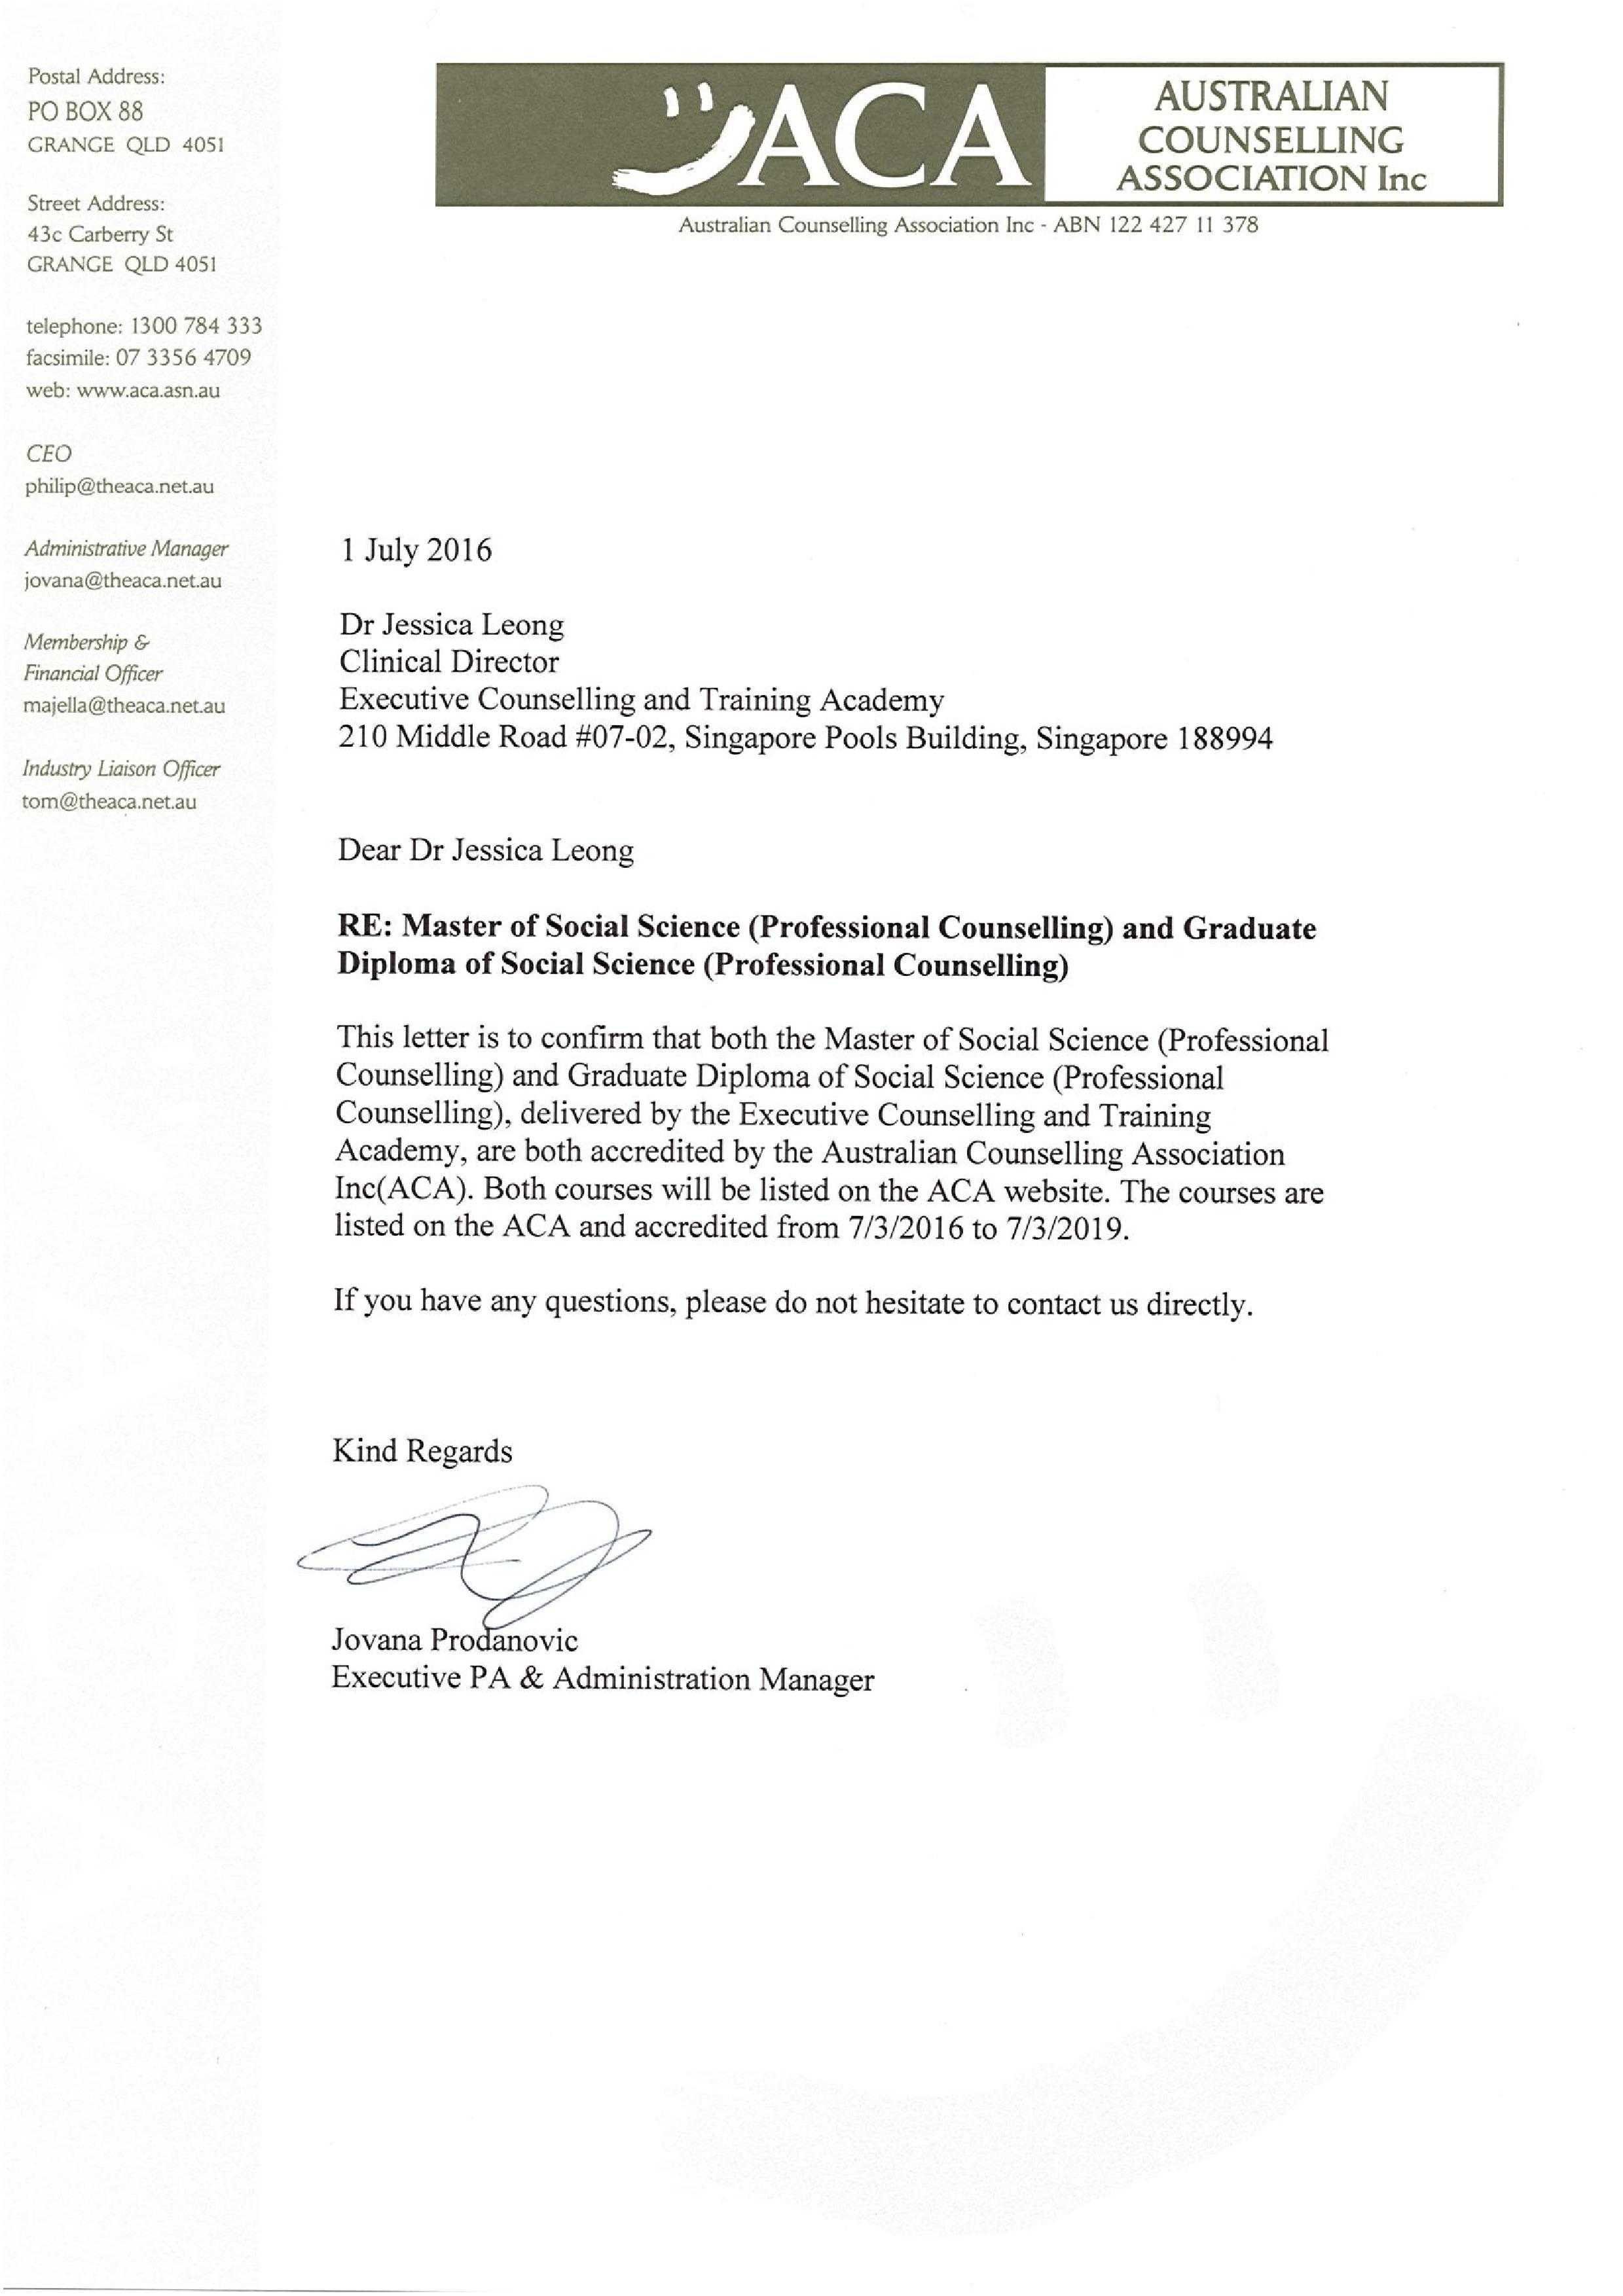 ACA Recognition for Master of Social Science (Professional Counselling)